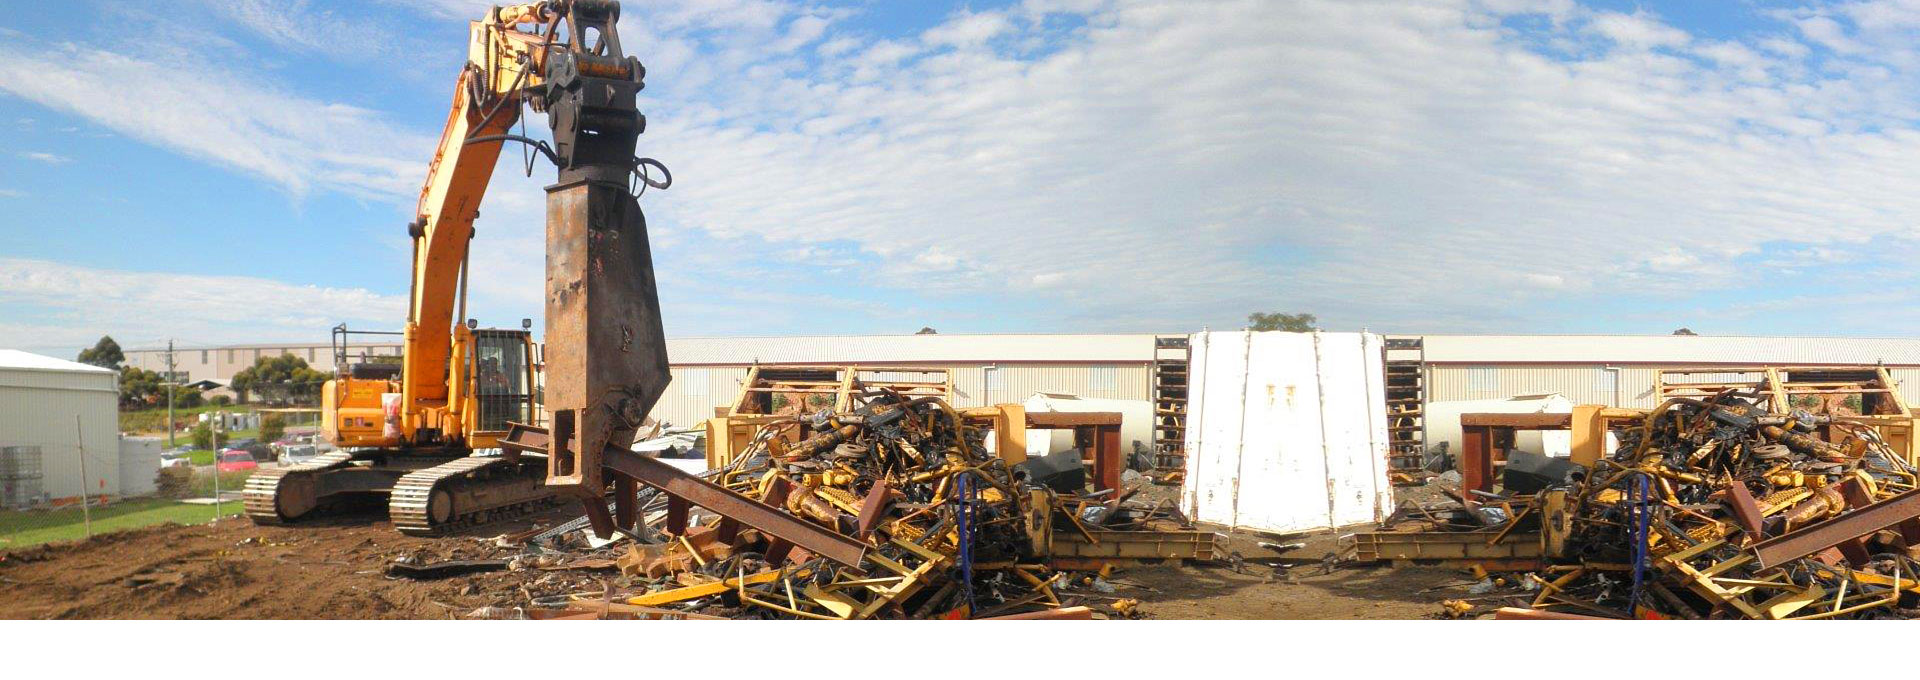 We have the equipment and experience to service all your scrap metal needs